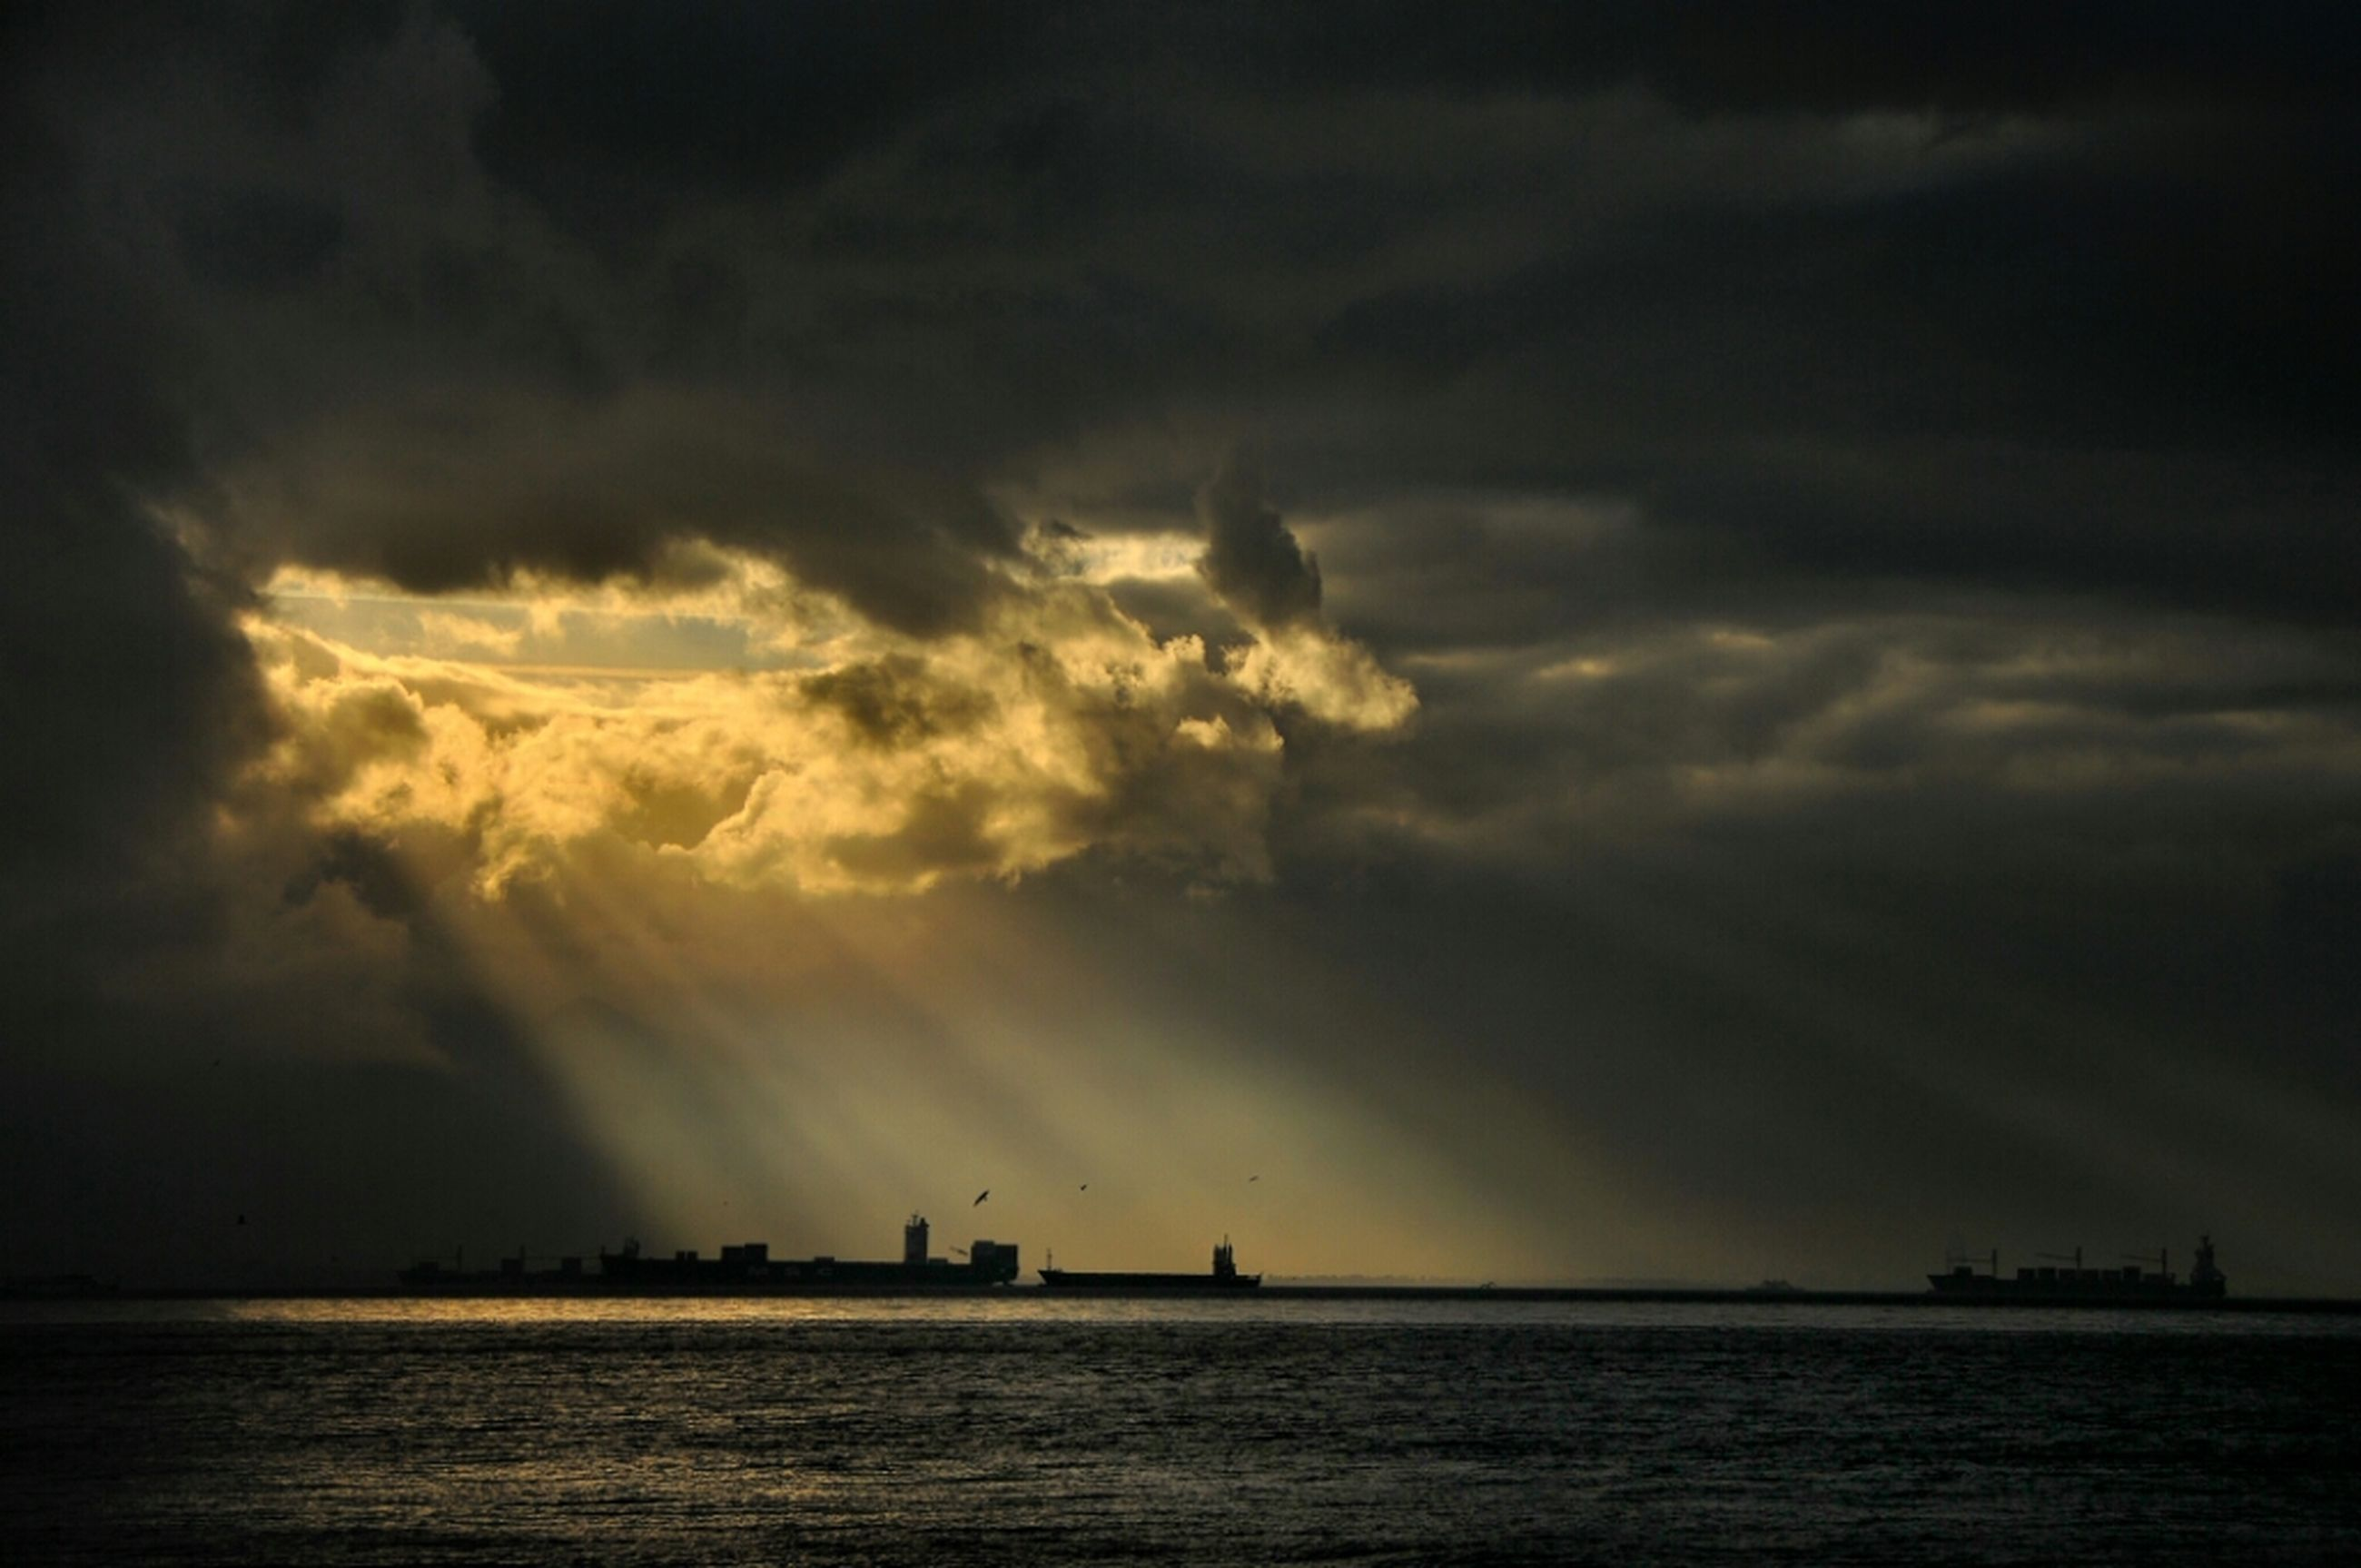 sea, sky, water, scenics, waterfront, beauty in nature, cloud - sky, horizon over water, tranquil scene, tranquility, sunset, nature, cloudy, cloud, silhouette, idyllic, sunbeam, sun, dramatic sky, weather